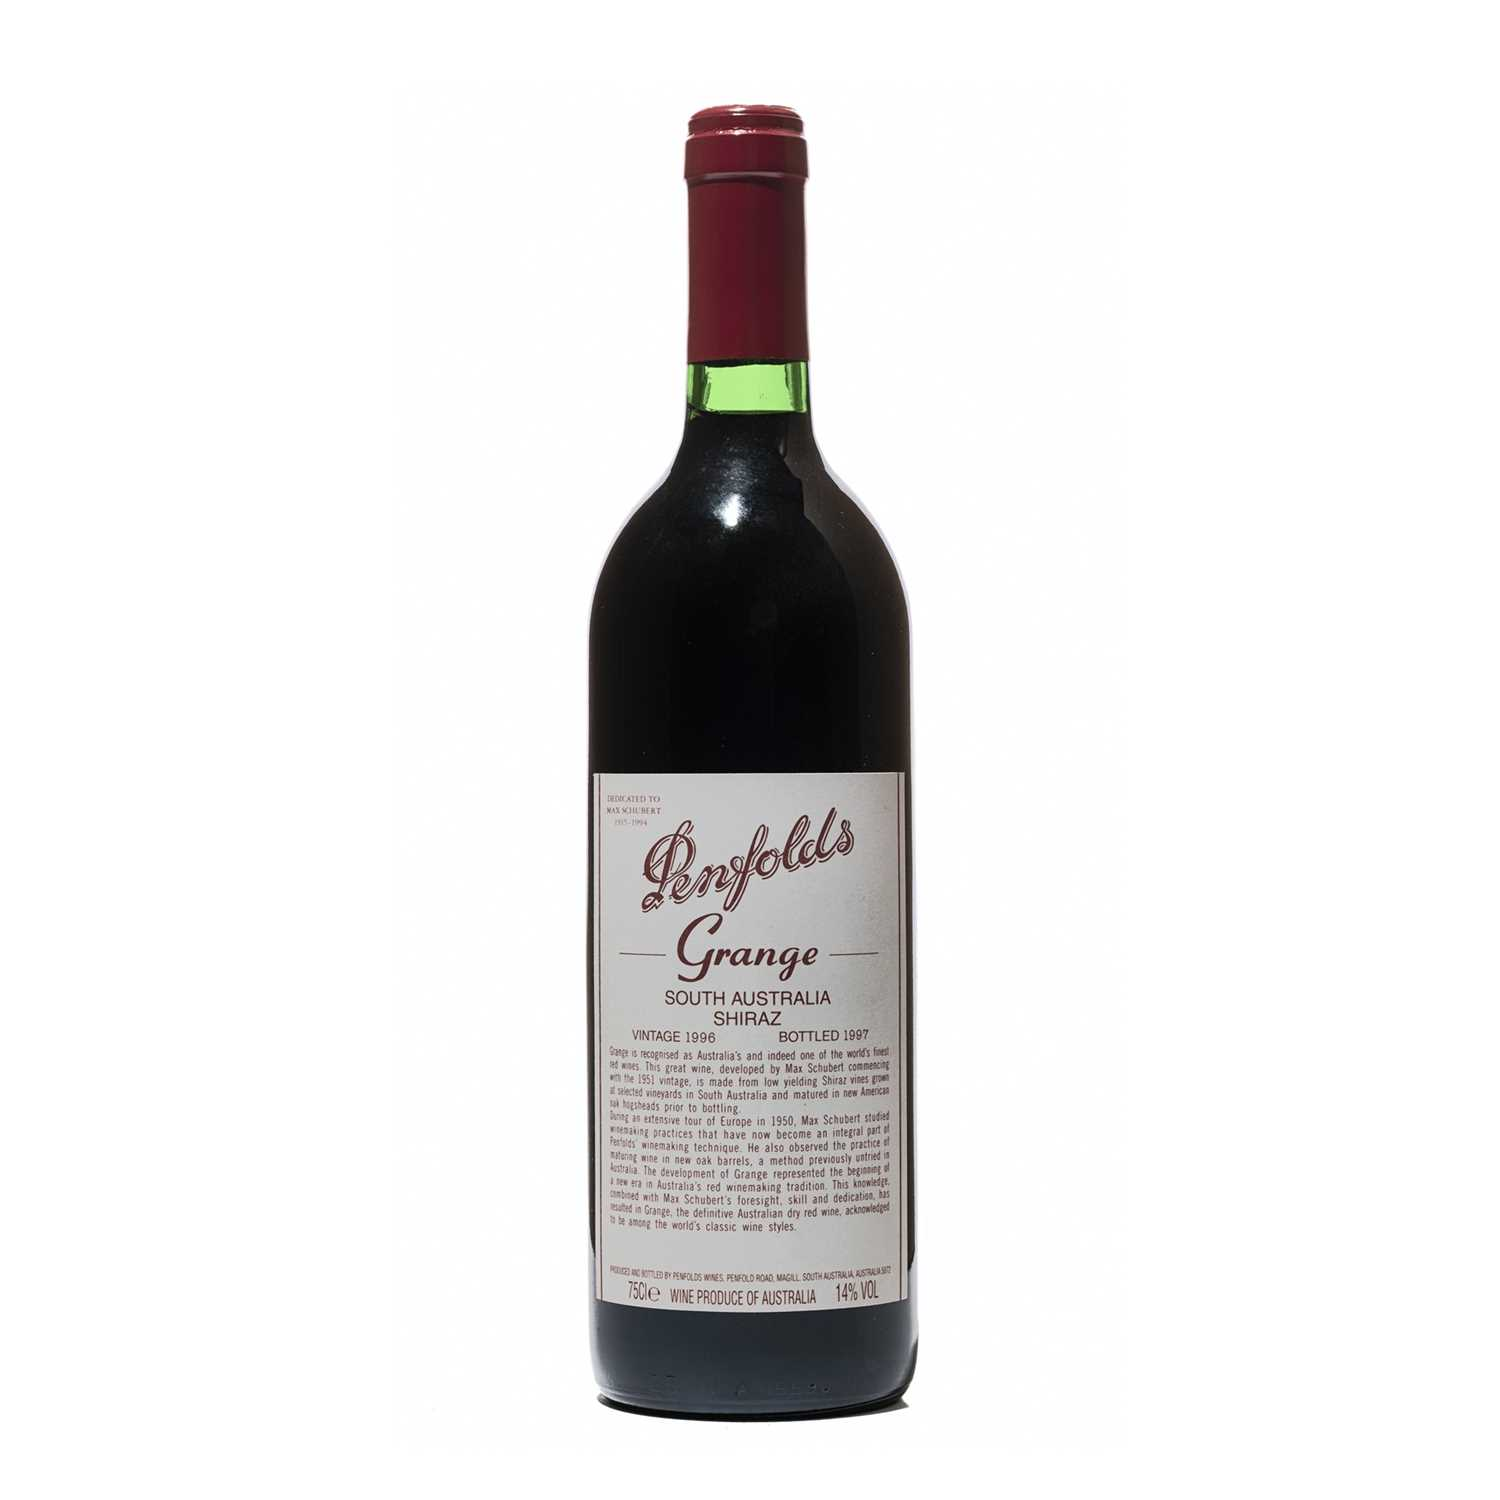 149 - 6 bottles 1996 Penfolds Grange